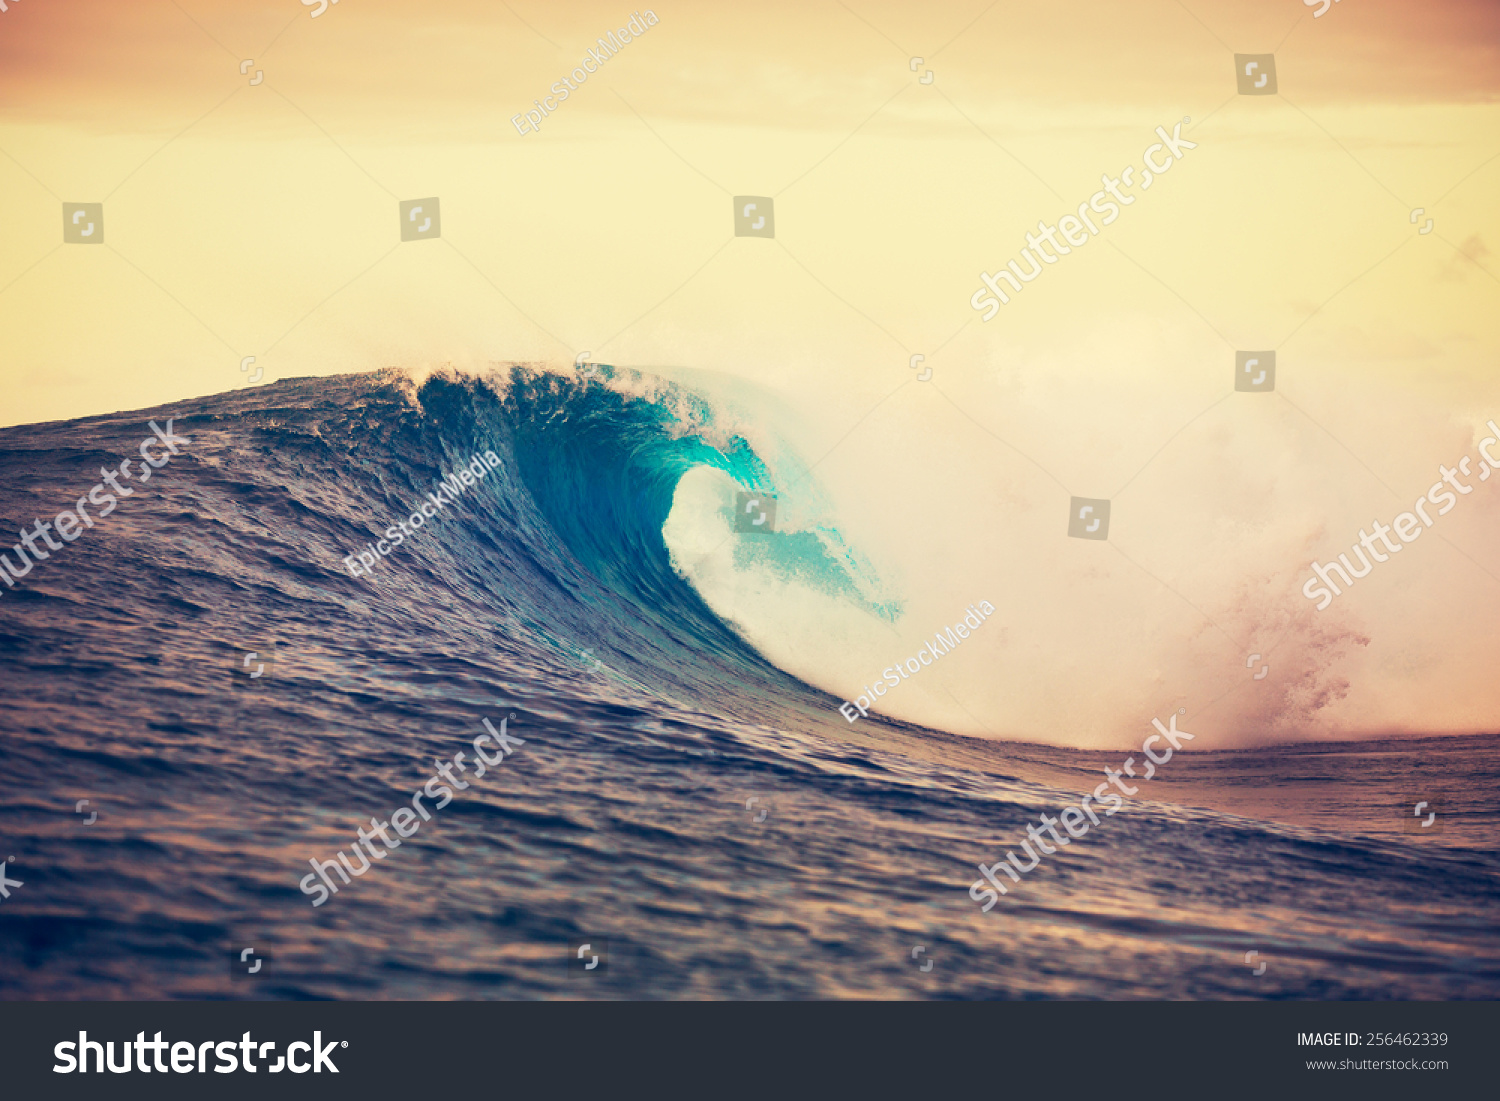 Amazing ocean wave breaking at sunset epic surf stock for Amazing ocean images